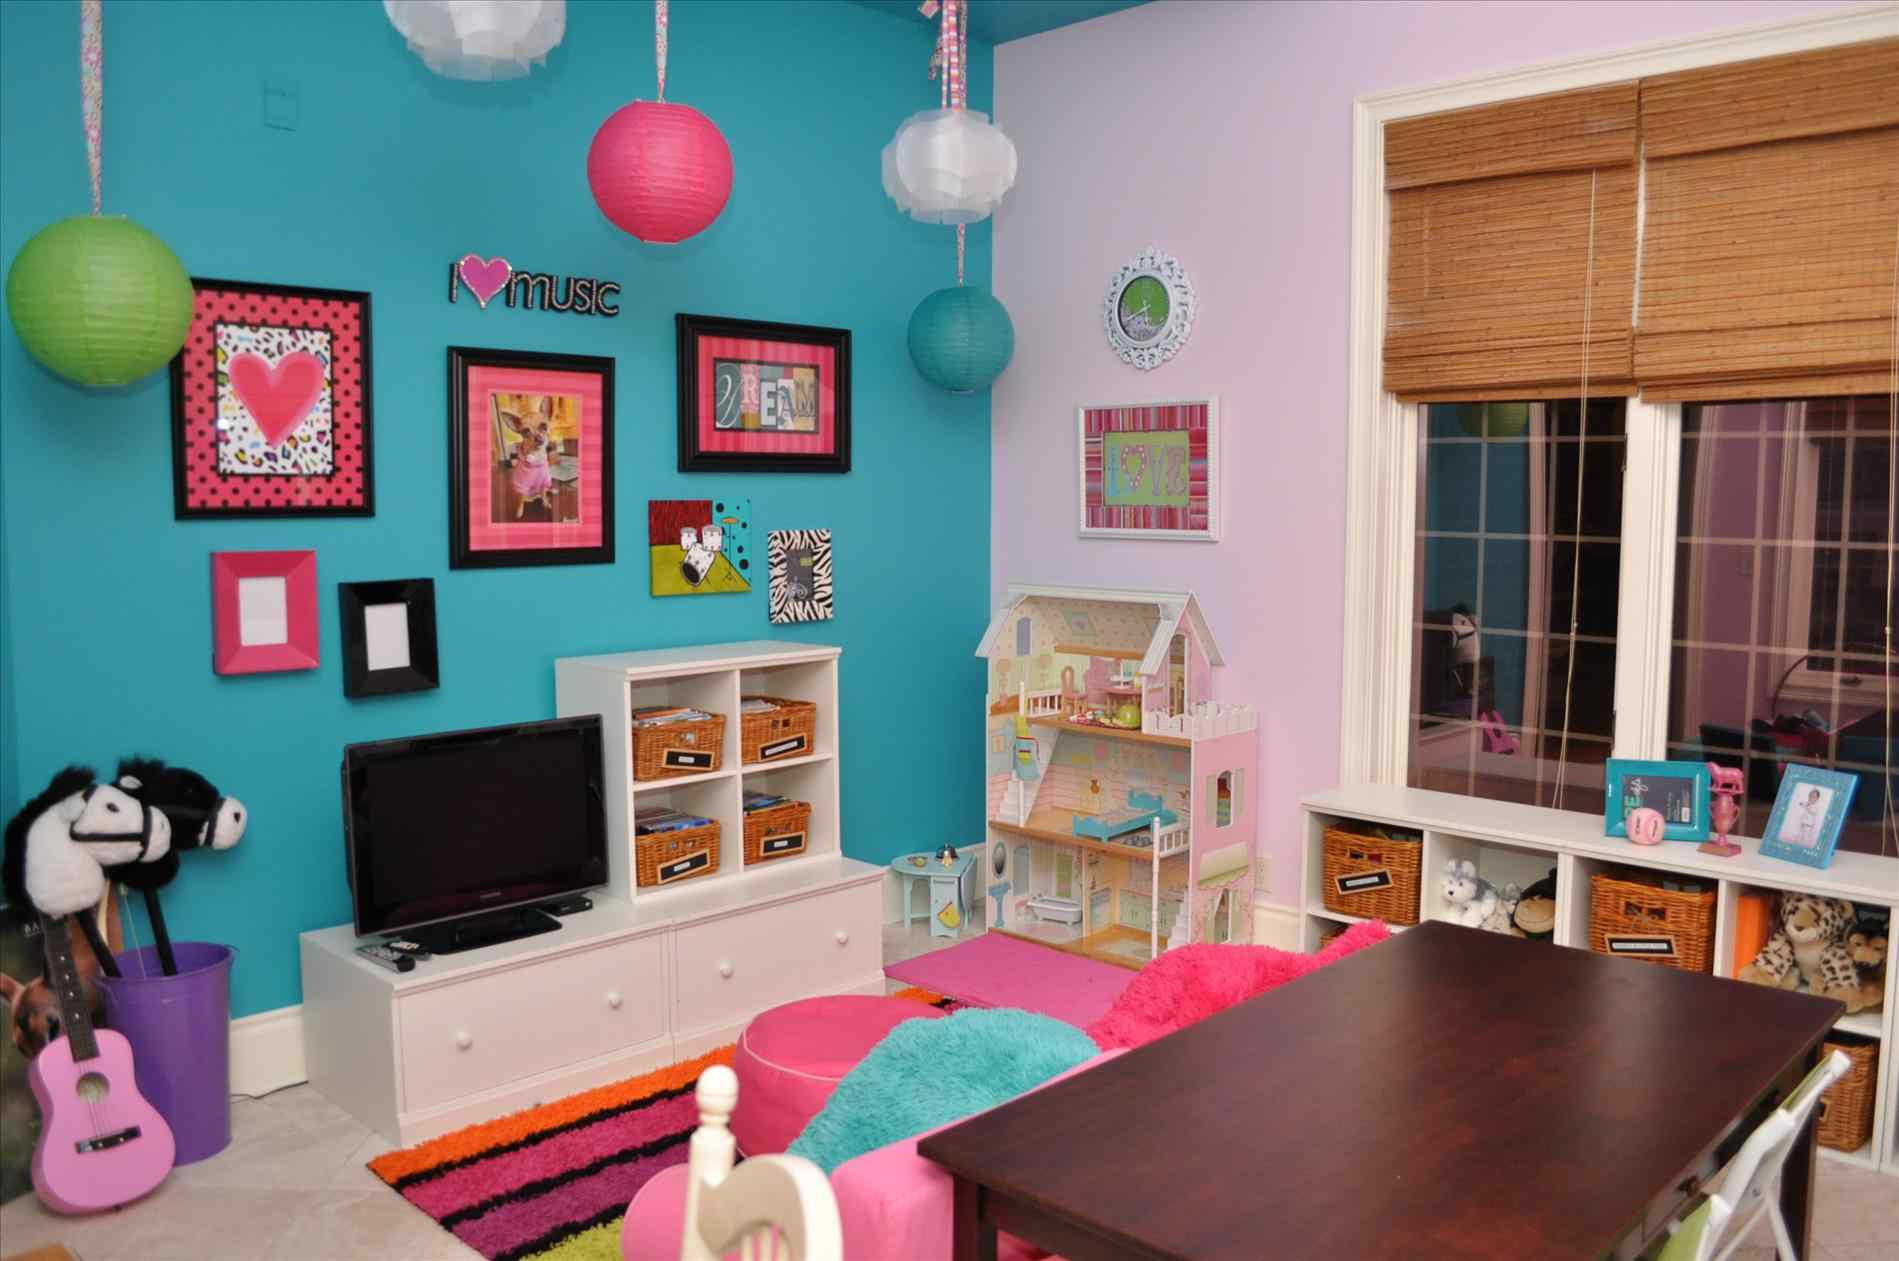 Best ideas about Tv For Kids Room . Save or Pin Small Tv For Kids Room Now.